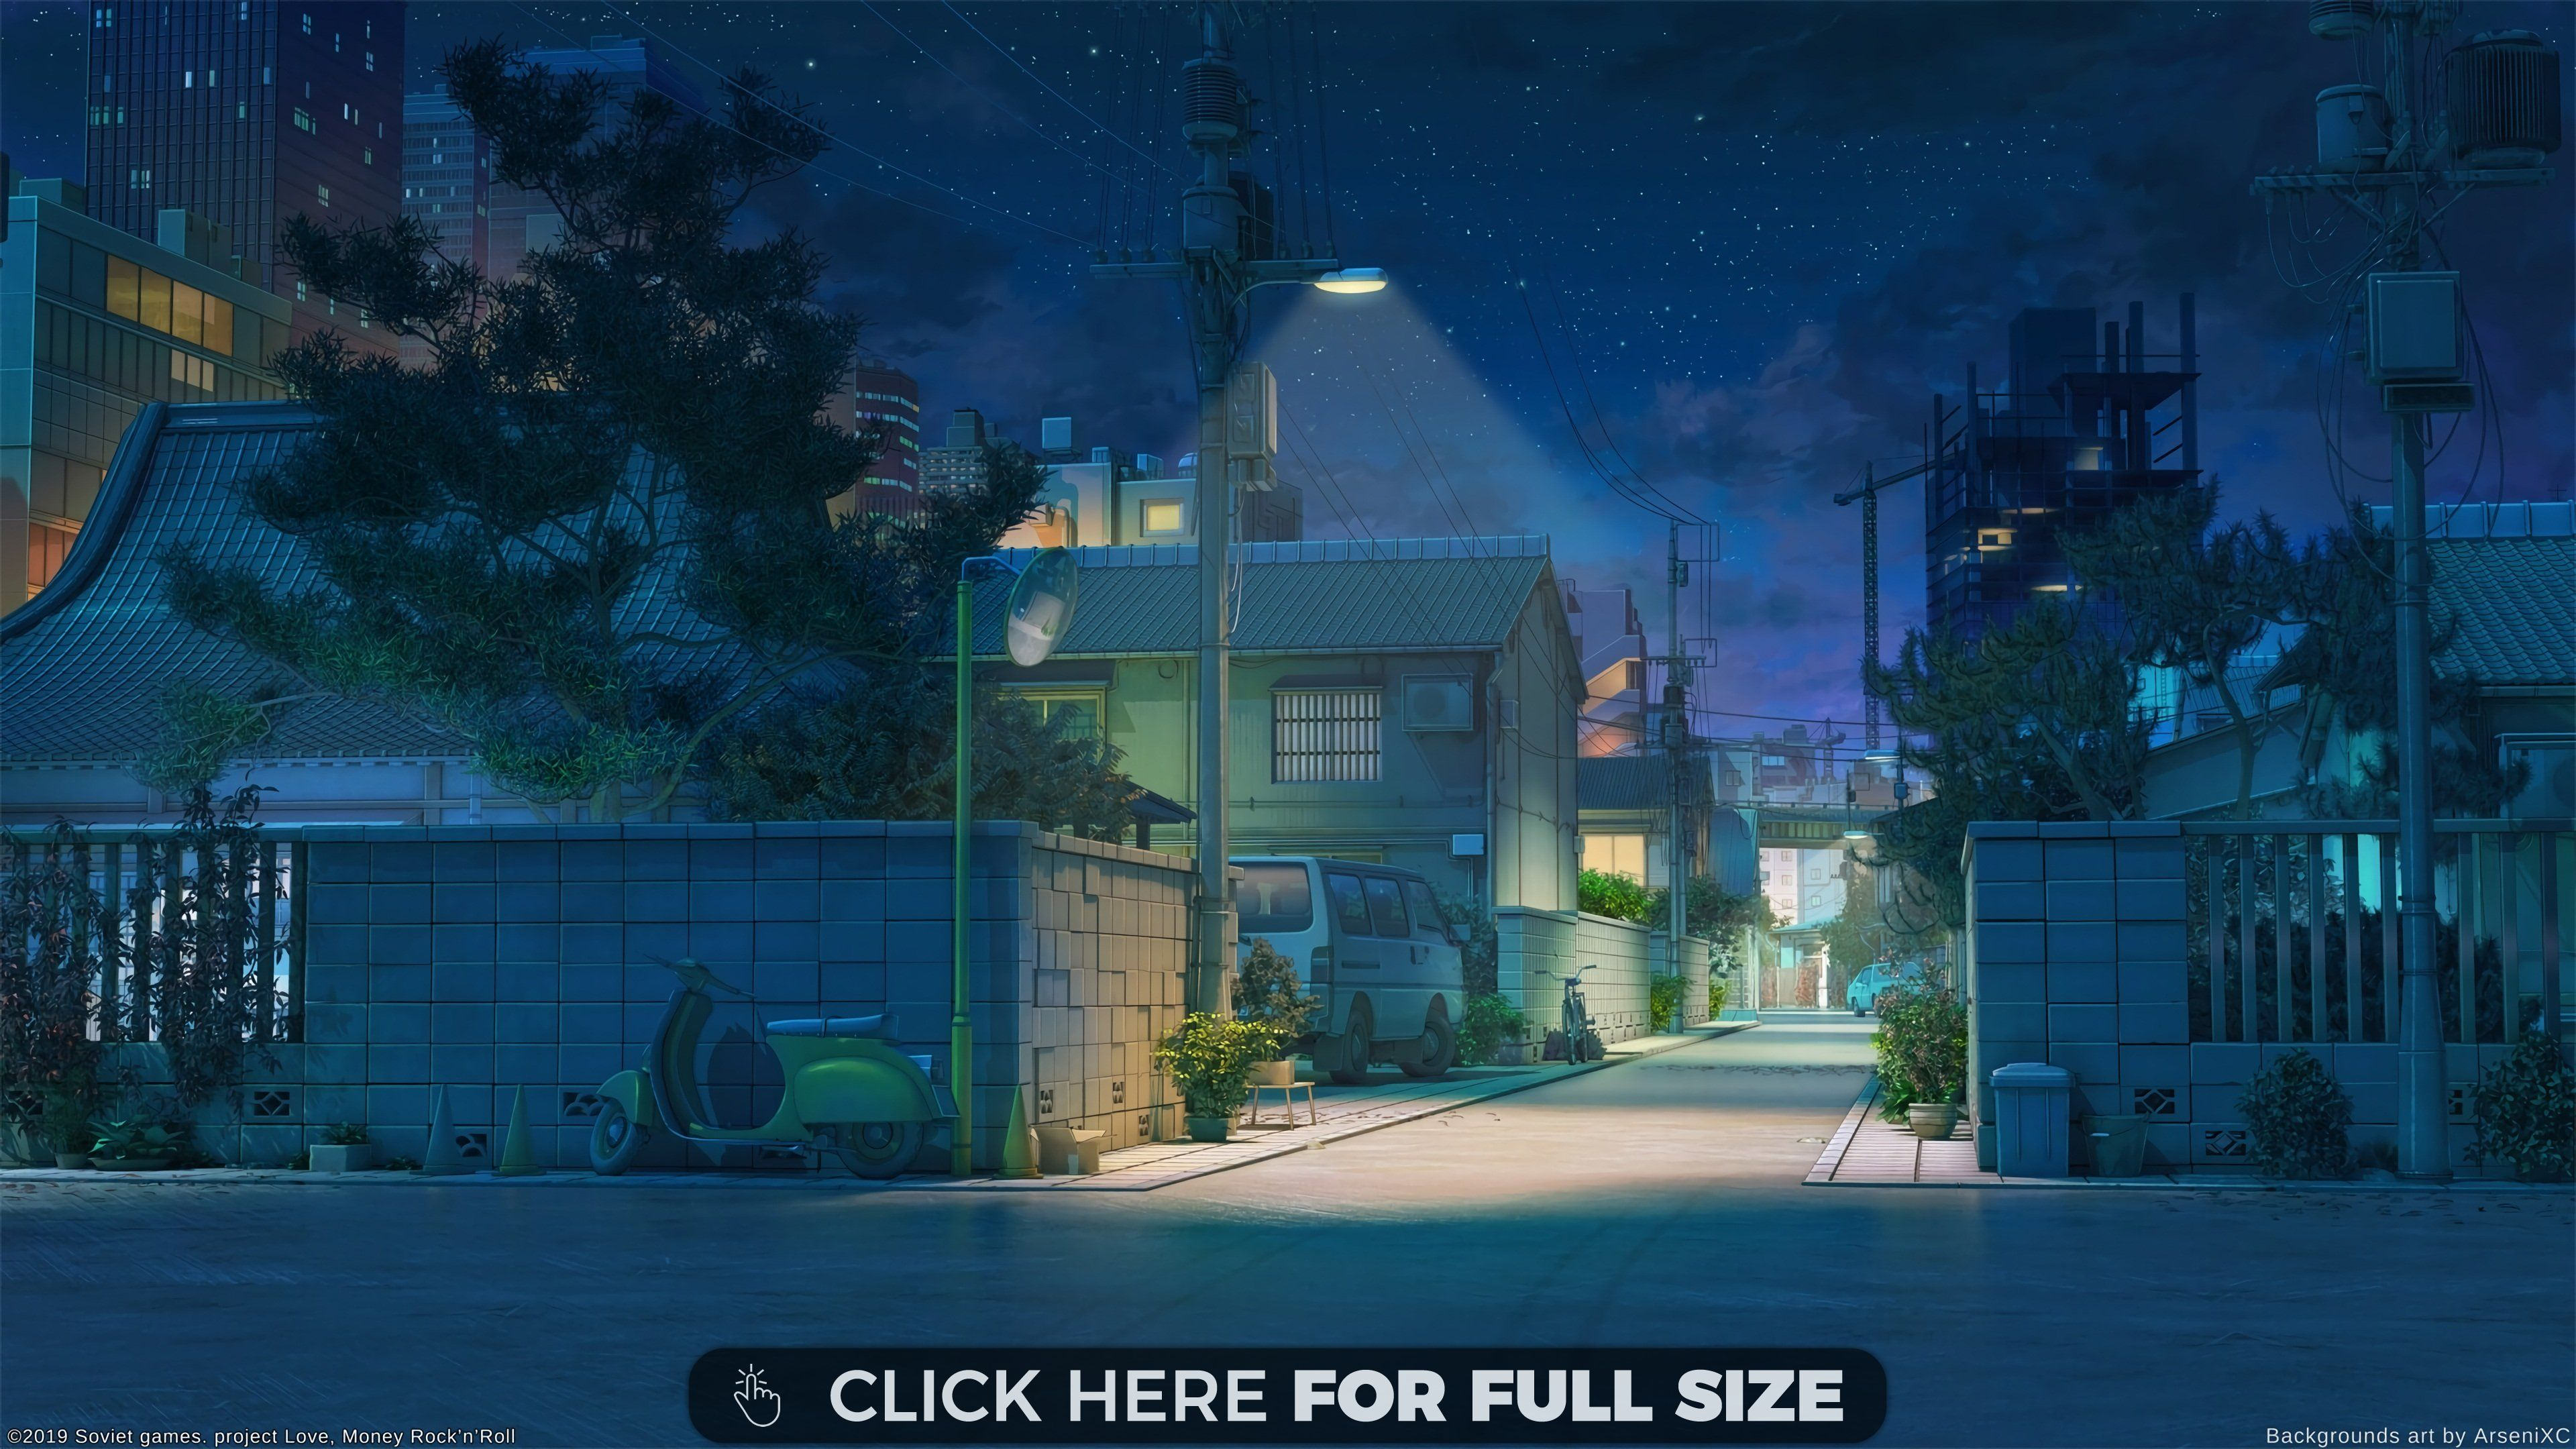 Night Japan Street 4k Wallpaper Scenery Background Anime Backgrounds Wallpapers Scenery Wallpaper